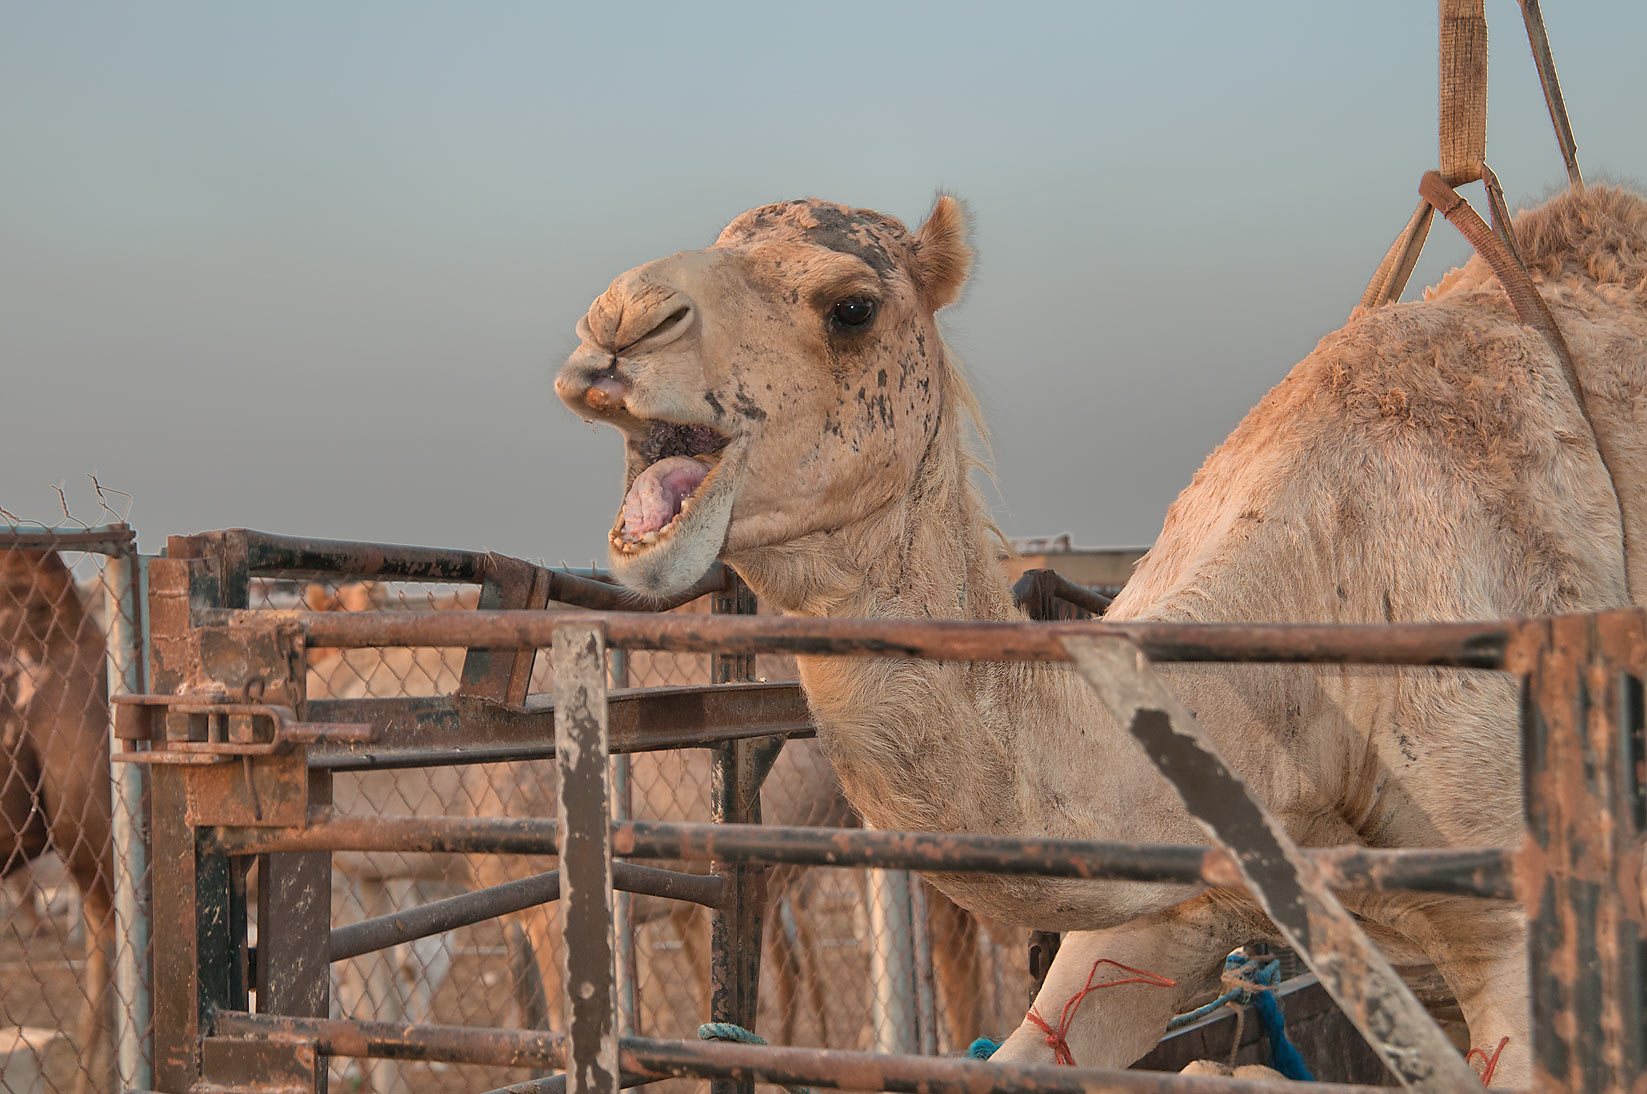 Bawling camel loaded onto a truck using crane in Camel Market (Souq). Doha, Qatar